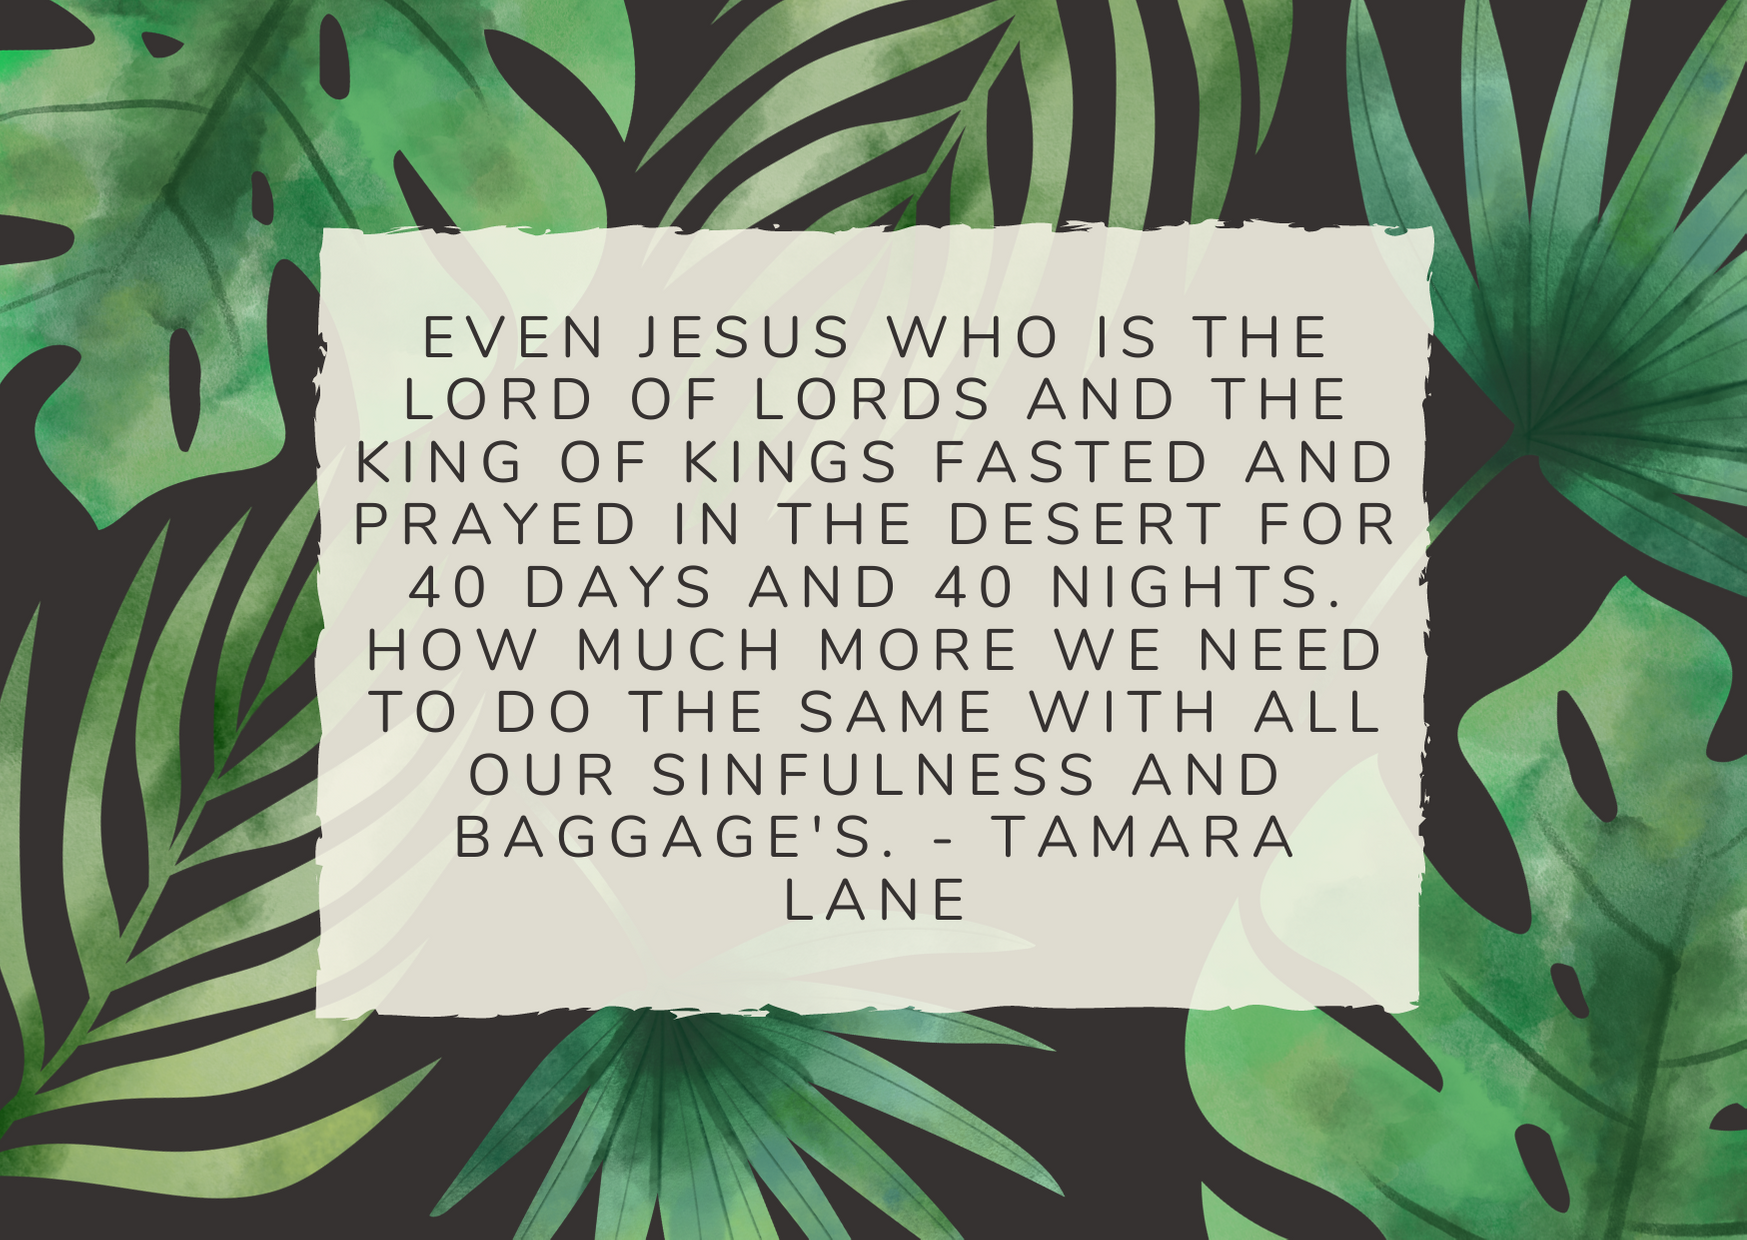 Even Jesus who is the Lord of Lords and the king of kings fasted and prayed in the desert for 40 days and 40 nights. How much more we need to do the same with all our sinfulness and baggage's. - Tamara Lane